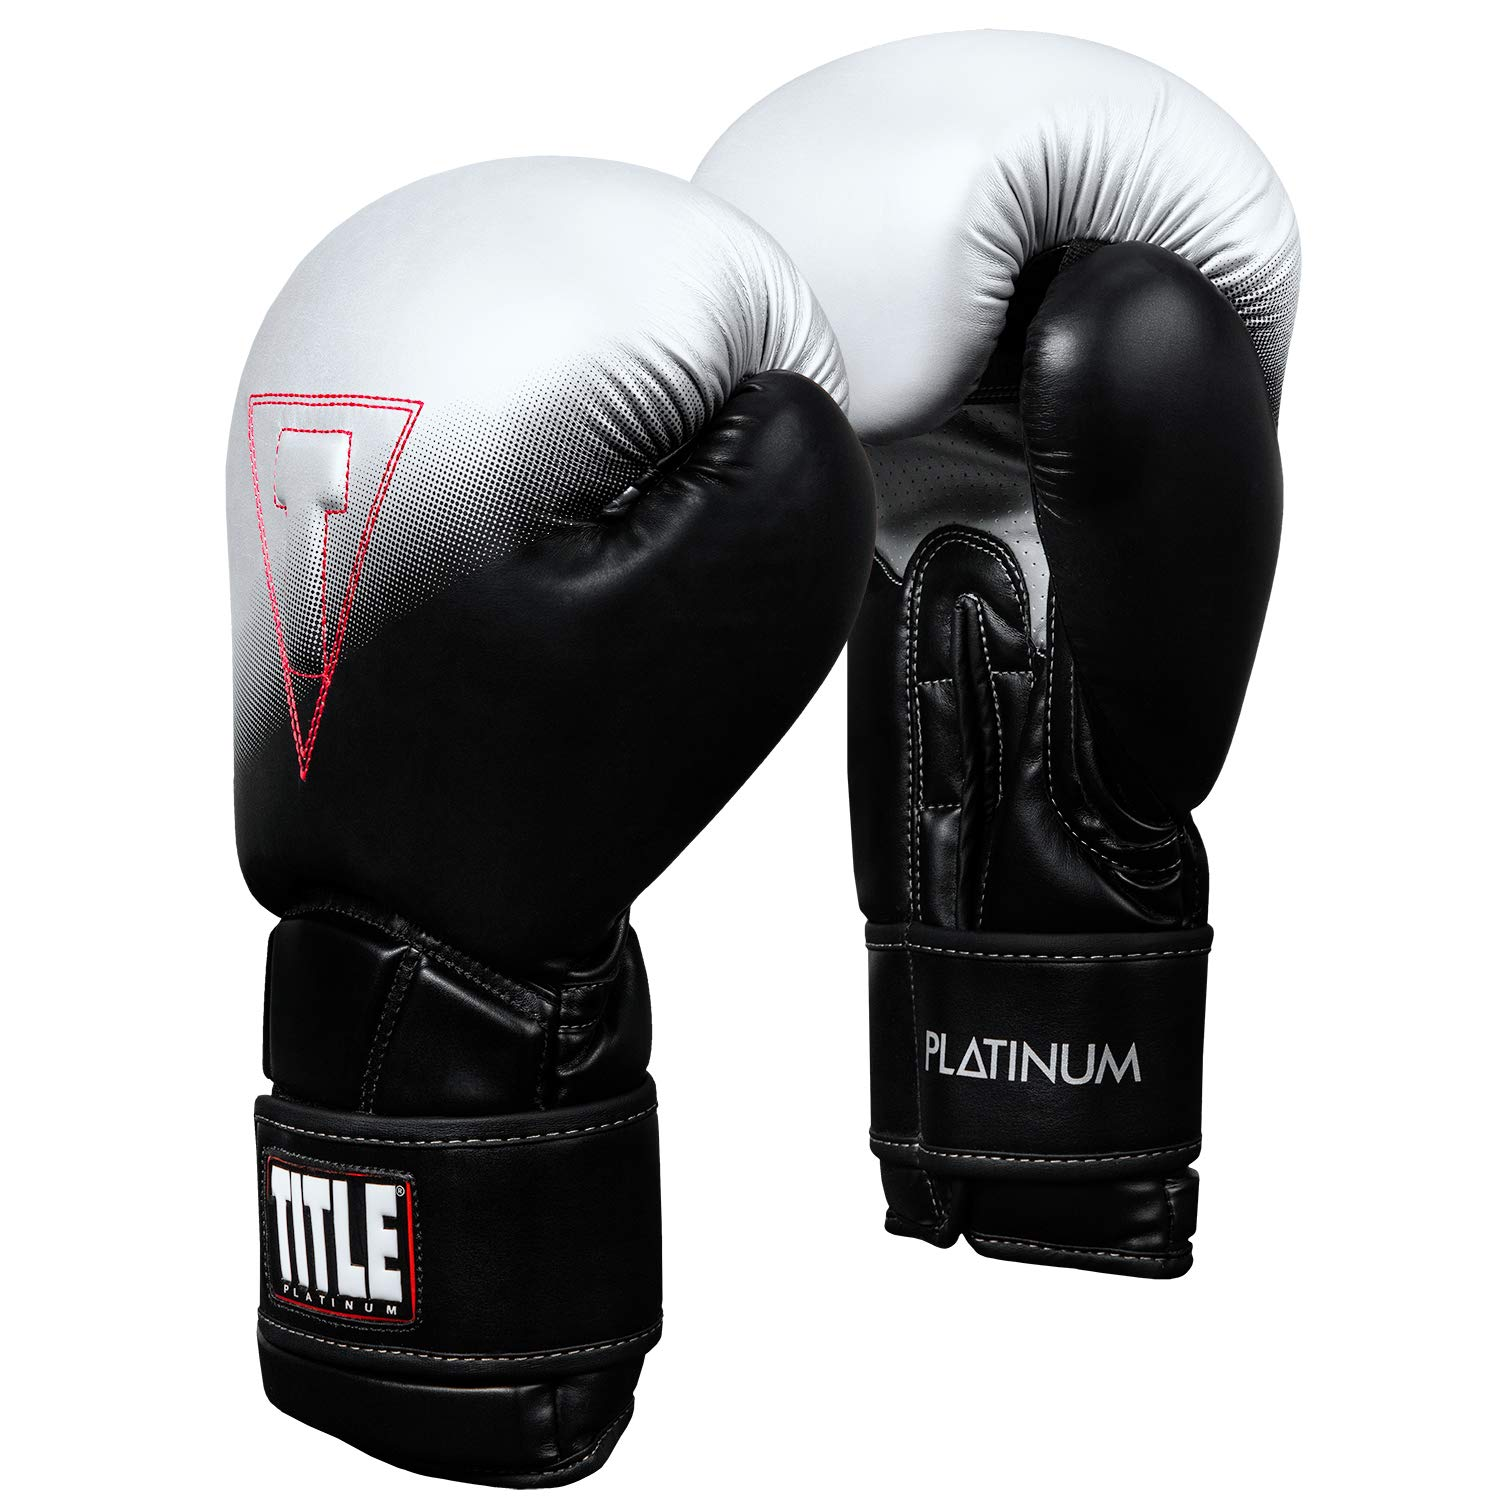 Top 16 Best Boxing Gloves (2020 Reviews & Buying Guide) 2